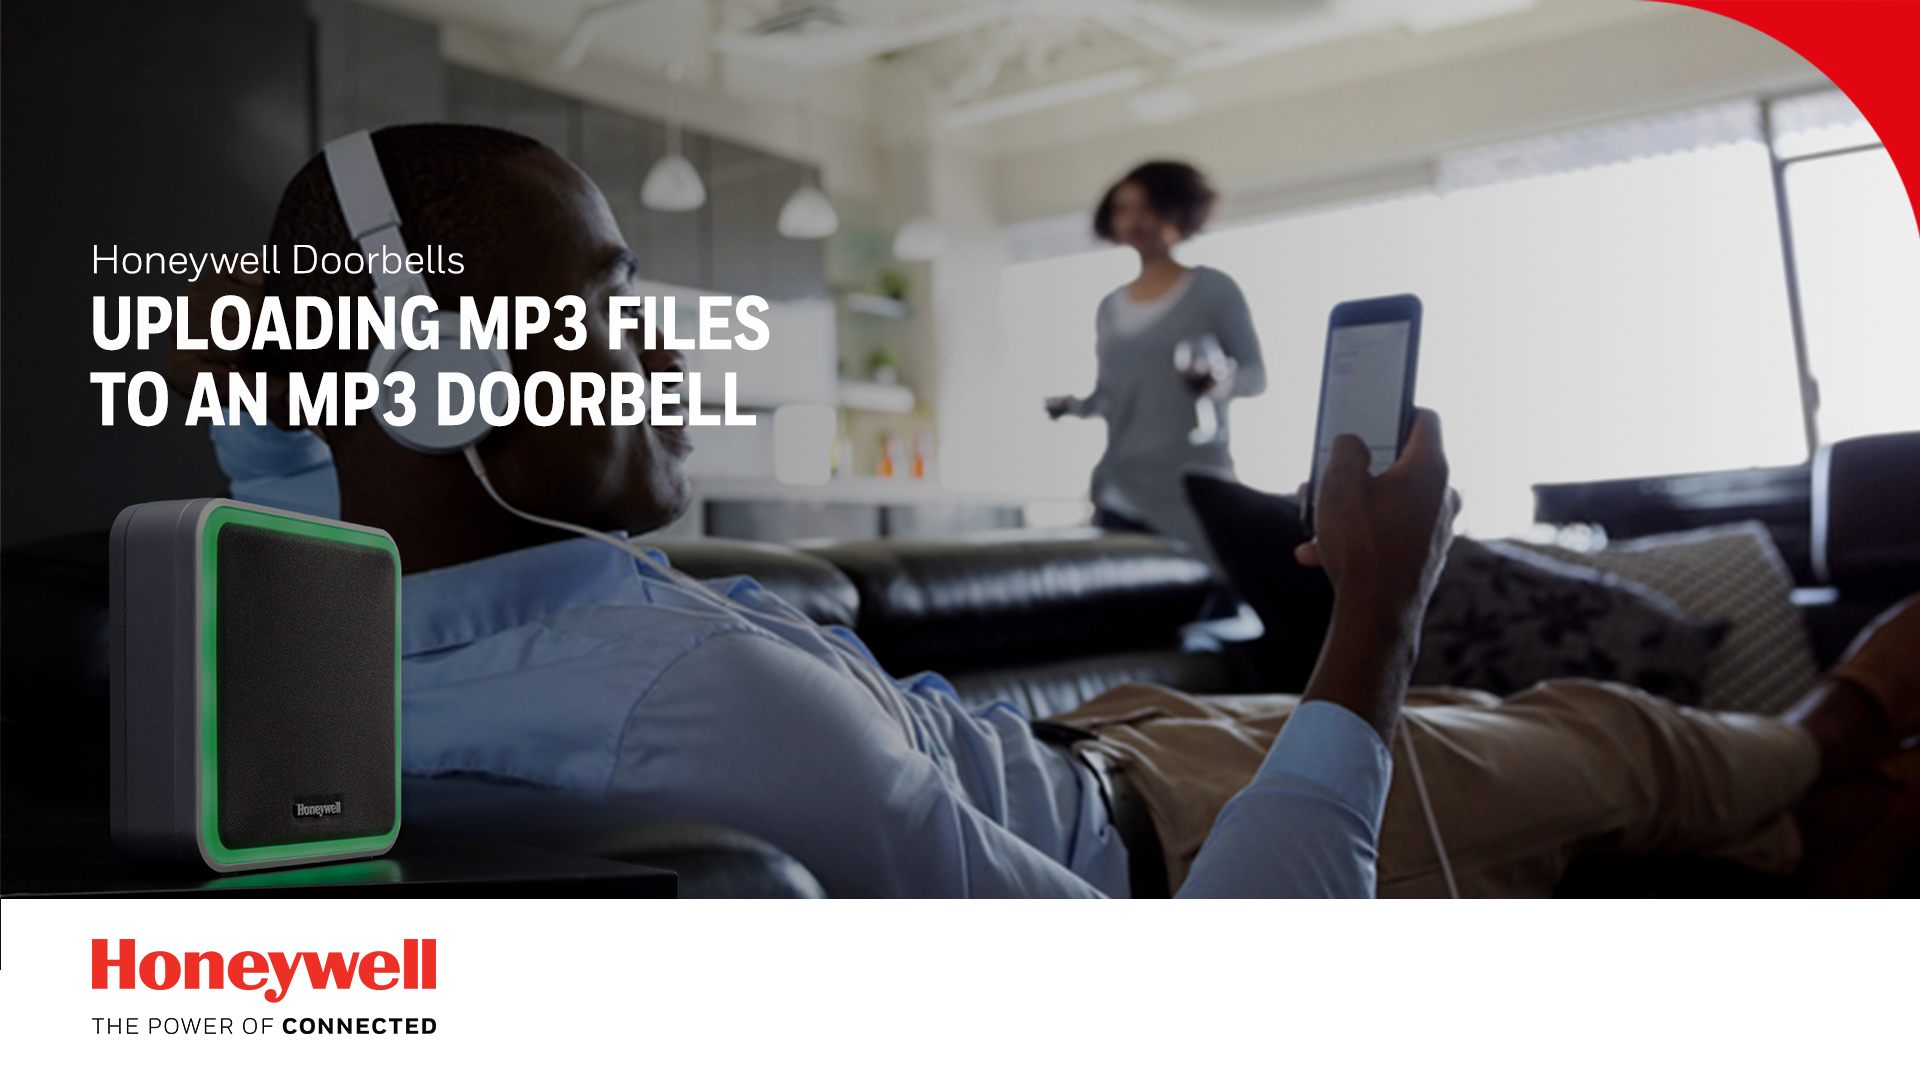 Uploading MP3 files to your MP3 doorbell